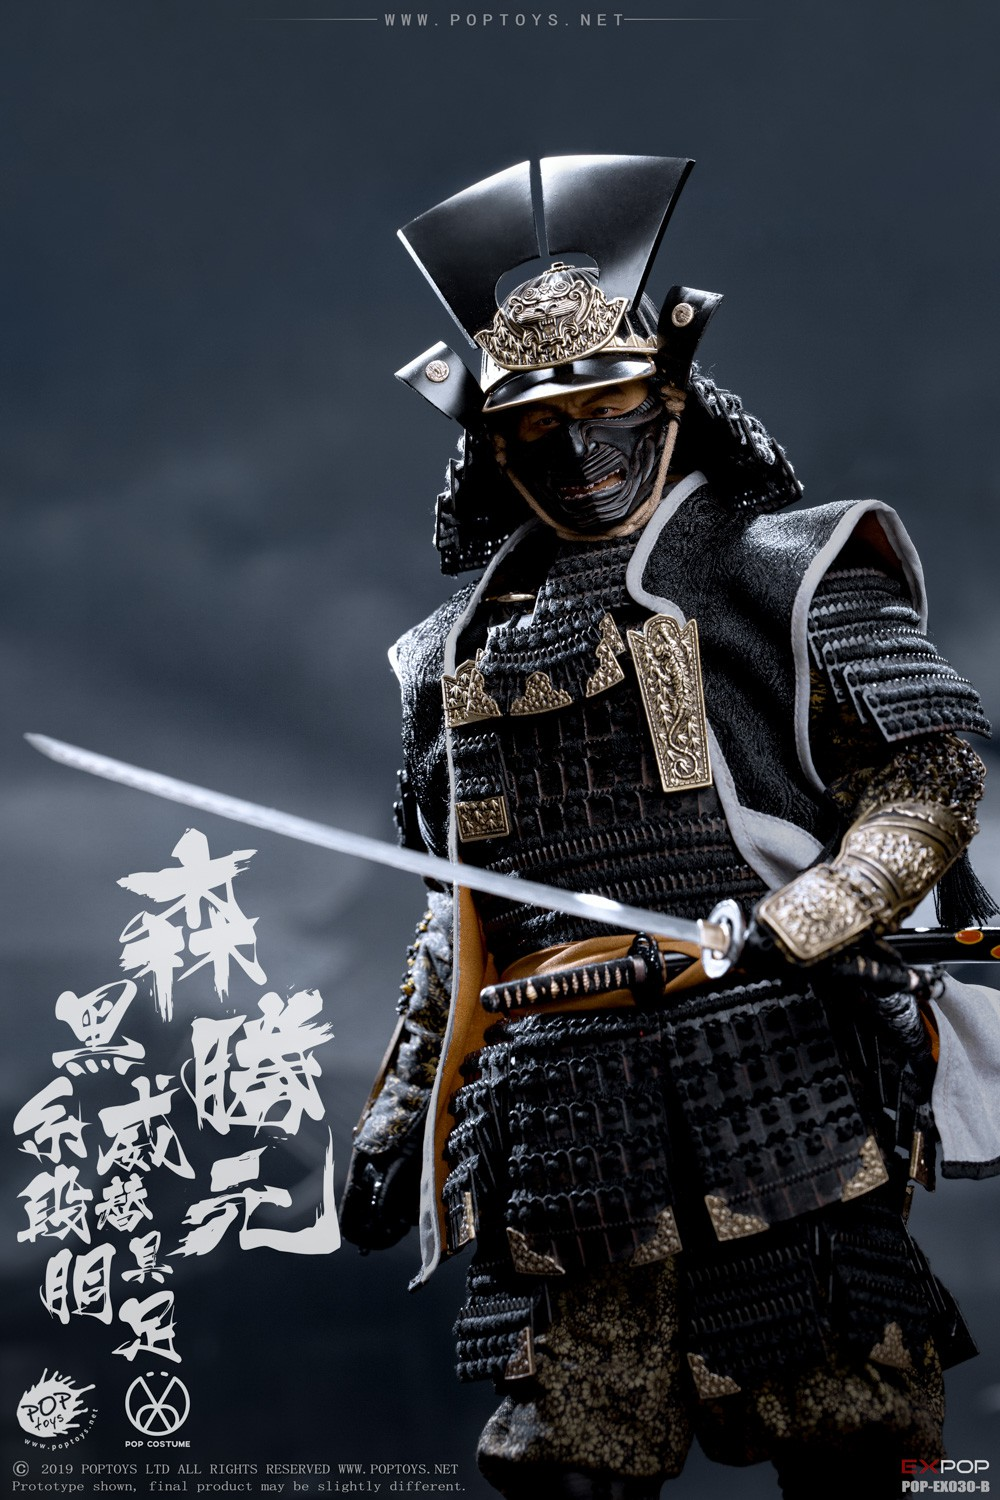 japanese - NEW PRODUCT: PopToys: 1/6 Benevolent Samurai EX30 Standard Edition/Deluxe Edition/Petition Edition [A piece of material 100% alloy] 16324610